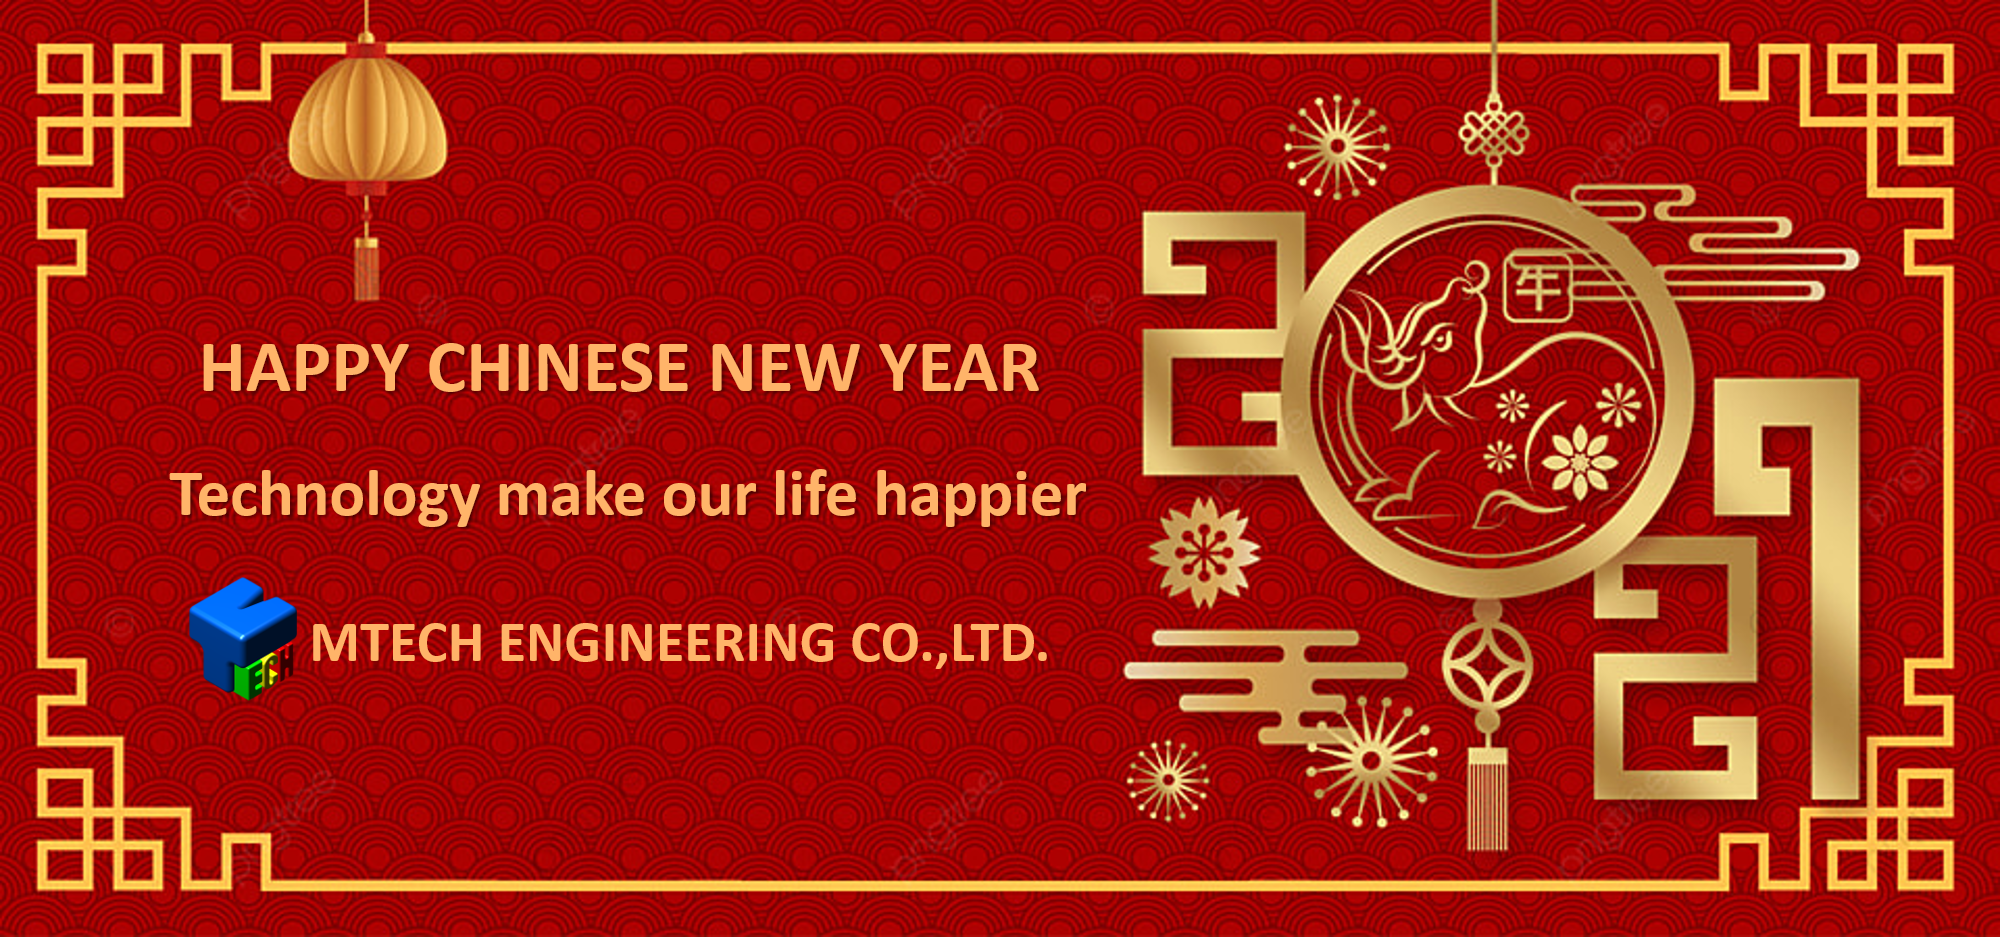 CNY Greeting 2